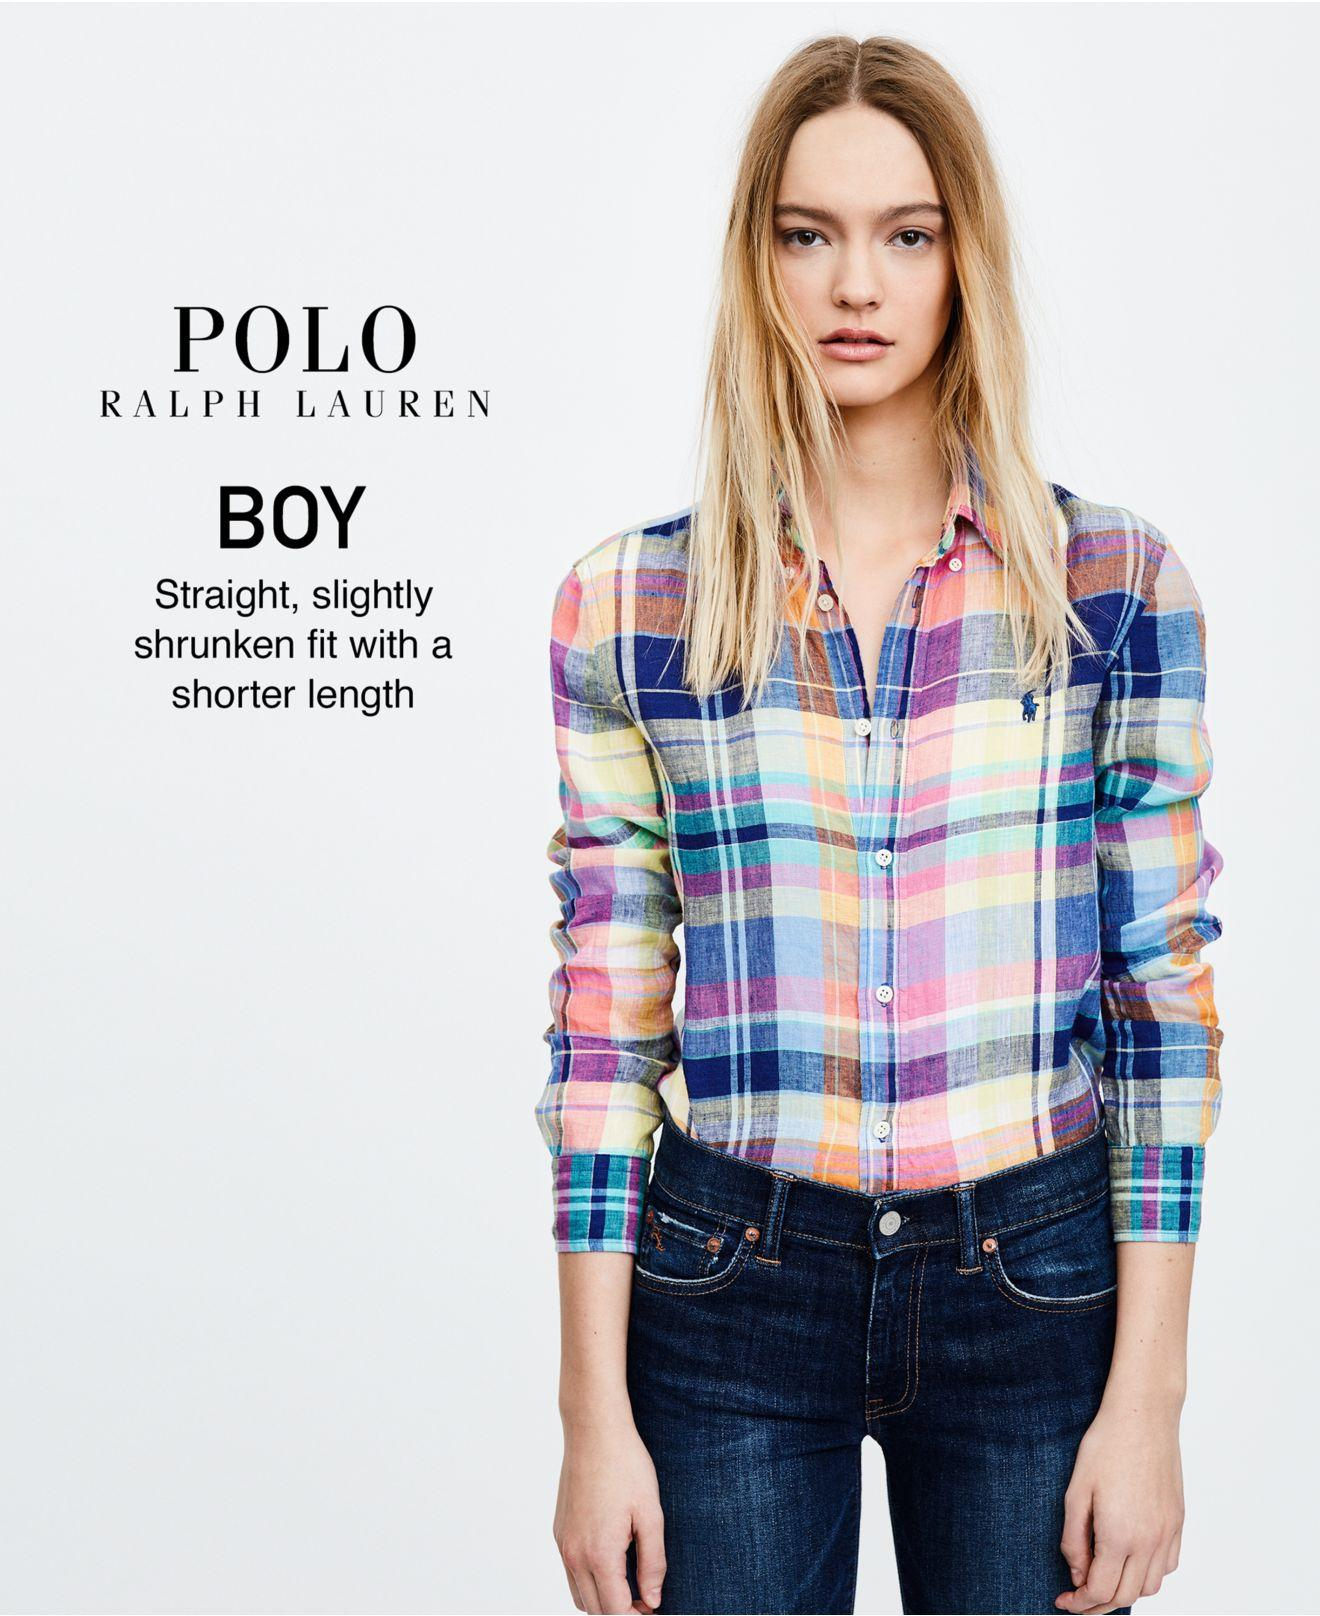 bf6b5e0e3ba ... pleasant pink teal sg221k16og uk womens clothing cdgknqrty9 ffffa  1e03a  switzerland lyst polo ralph lauren boy fit plaid linen shirt f938d  1298d